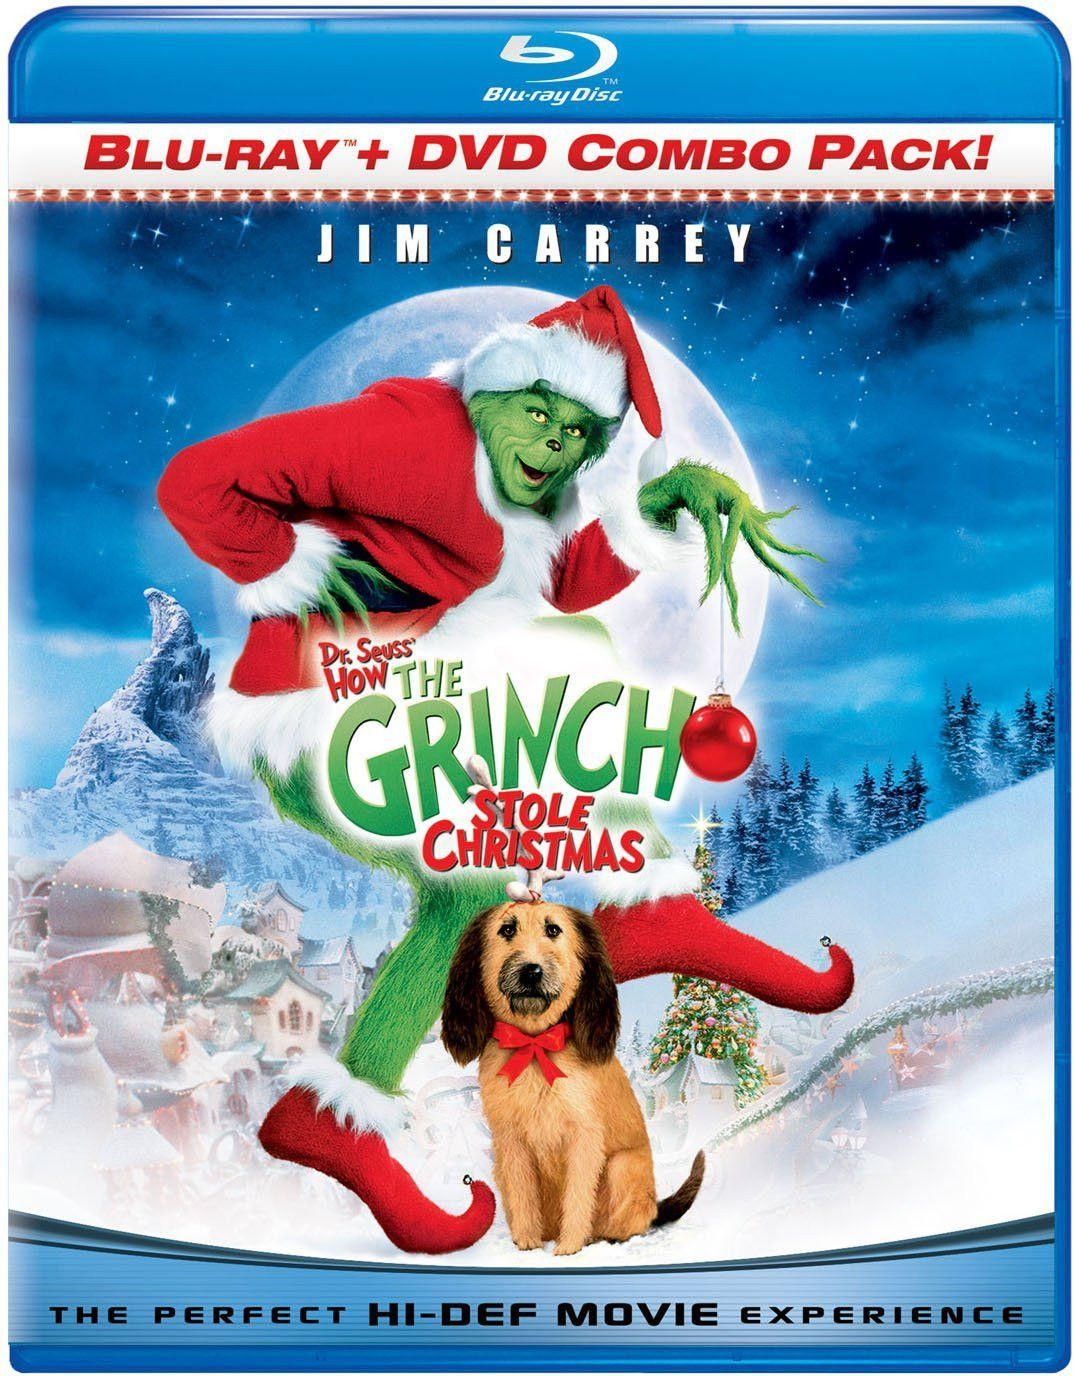 dr seuss how the grinch stole christmas blu ray combo pack blu ray dvd